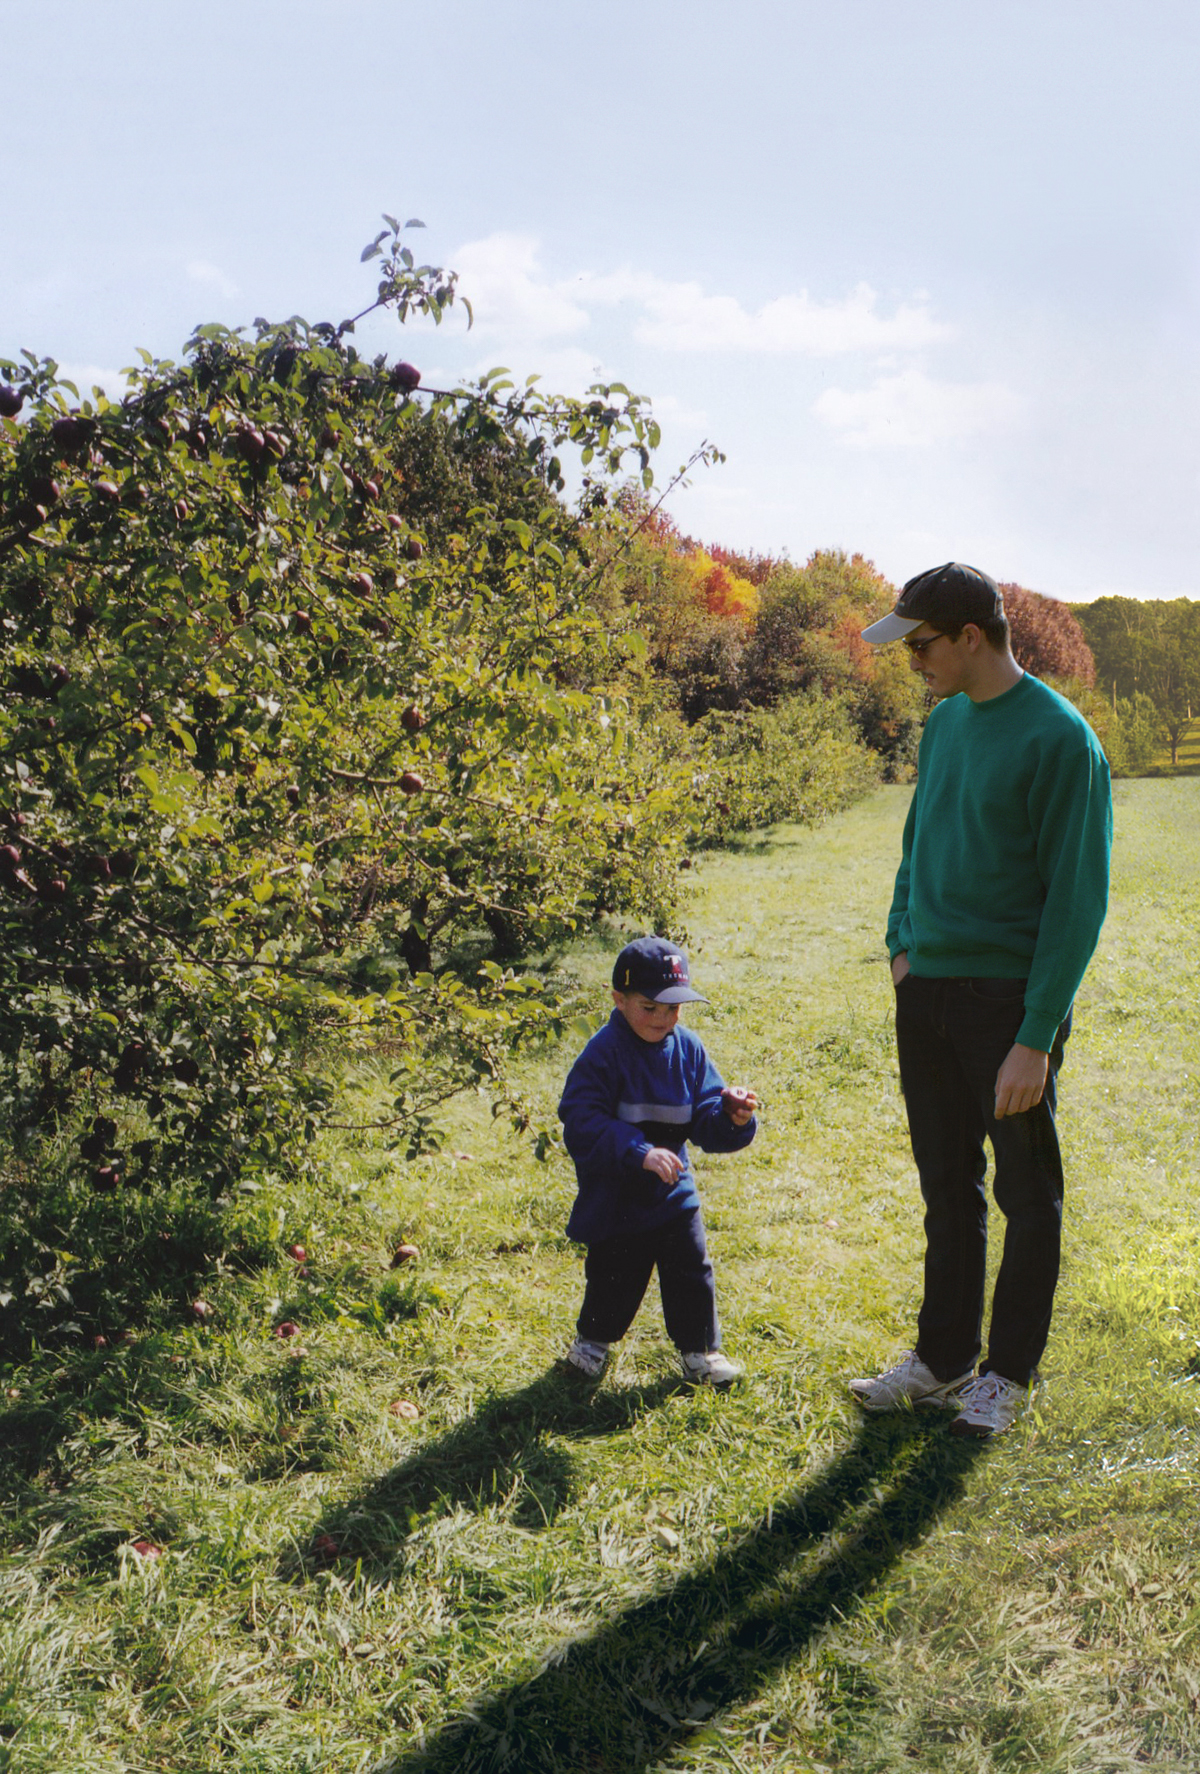 Conor and his younger self in an orchard